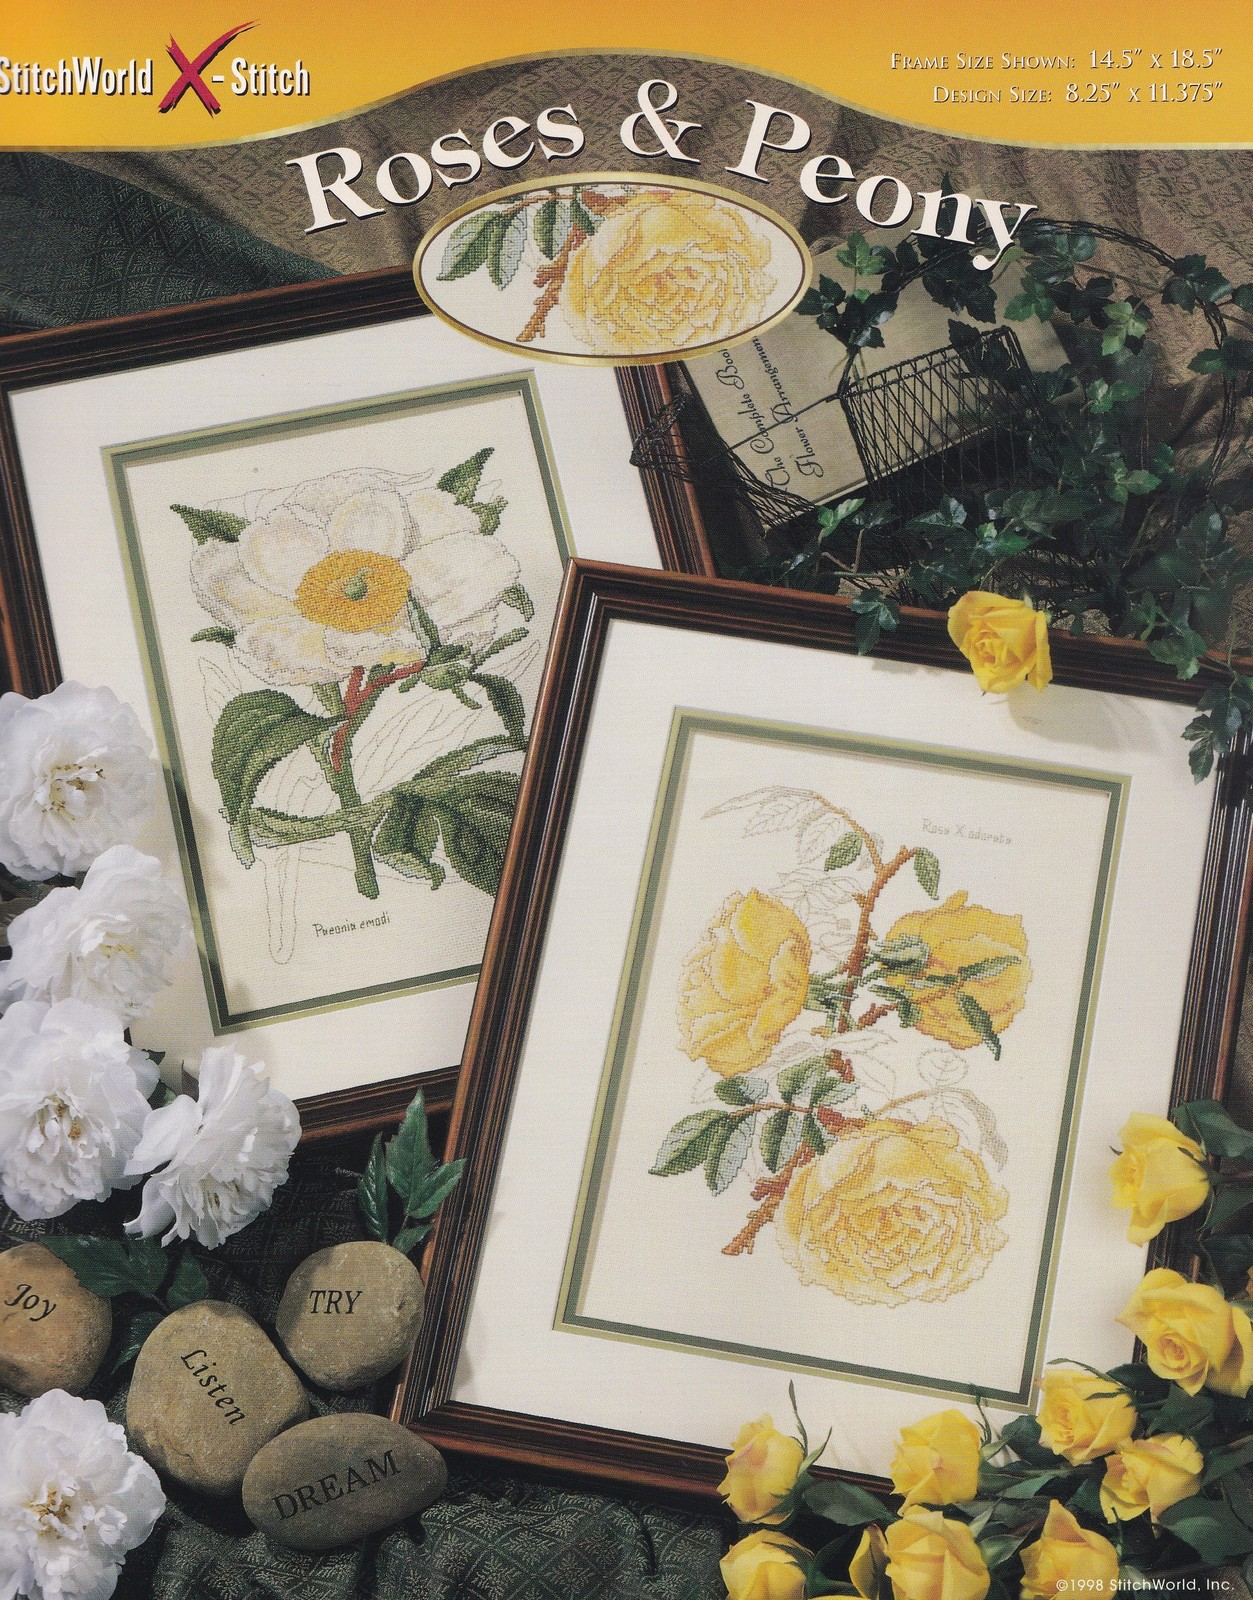 Primary image for Roses & Peony, StitchWorld Floral Cross Stitch Pattern Booklet 03-213